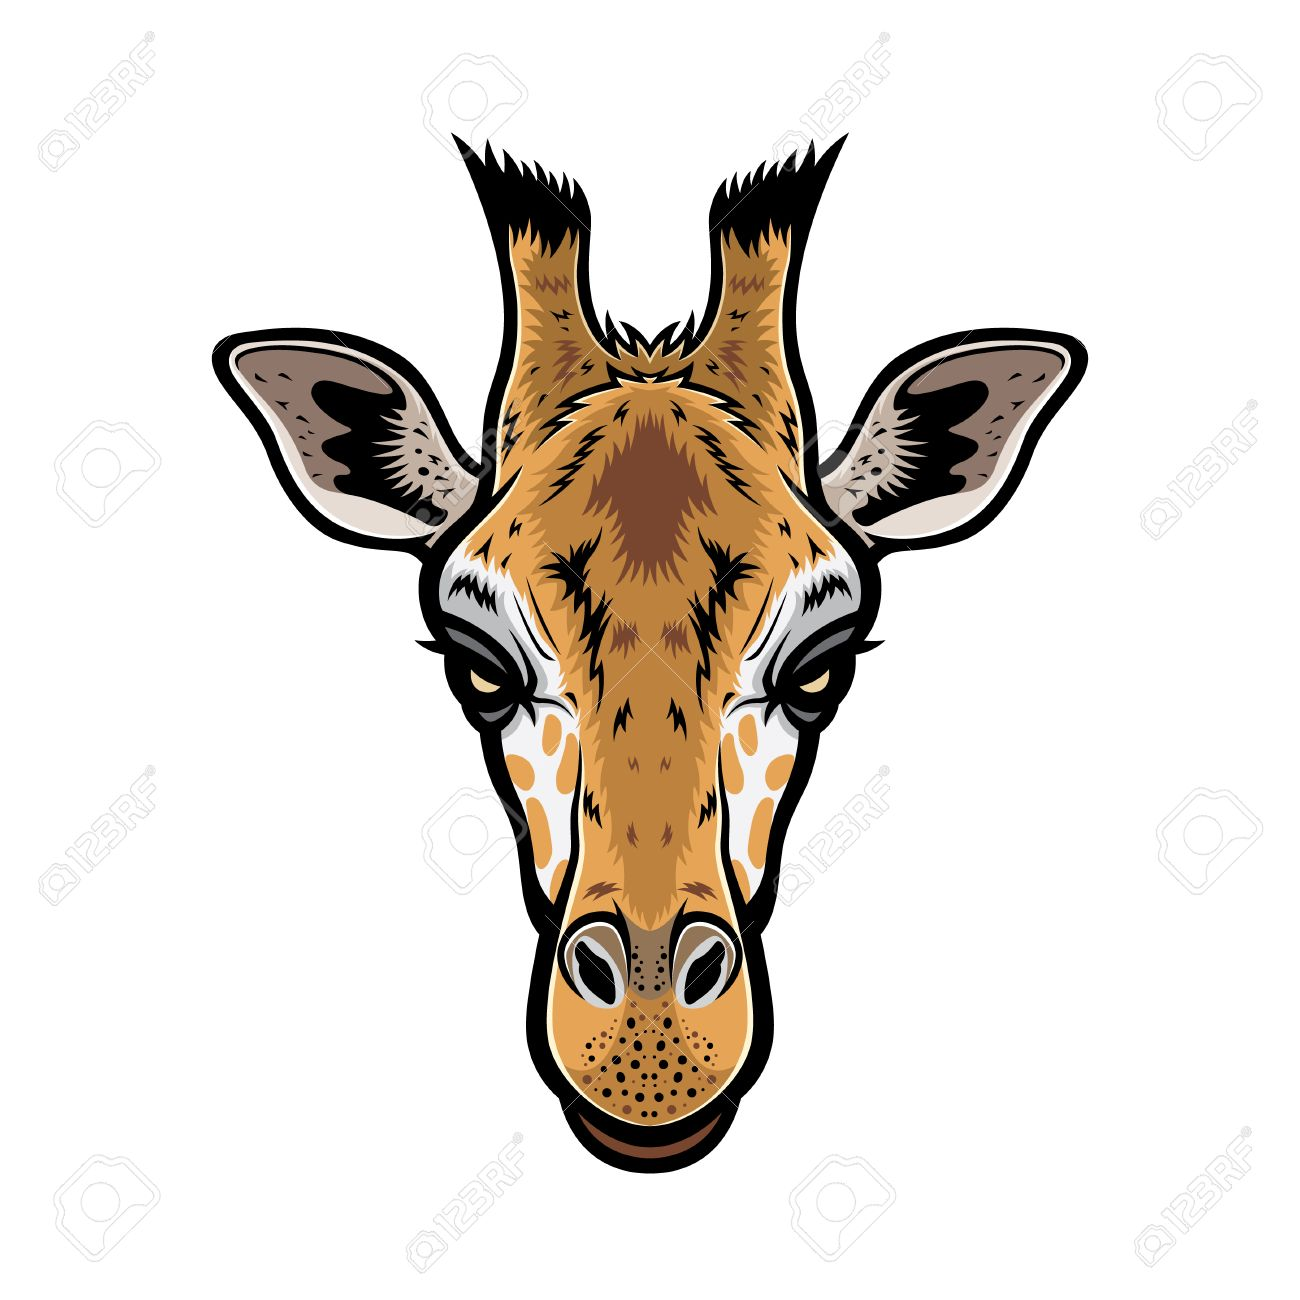 giraffe head vector graphic illustration with color royalty free